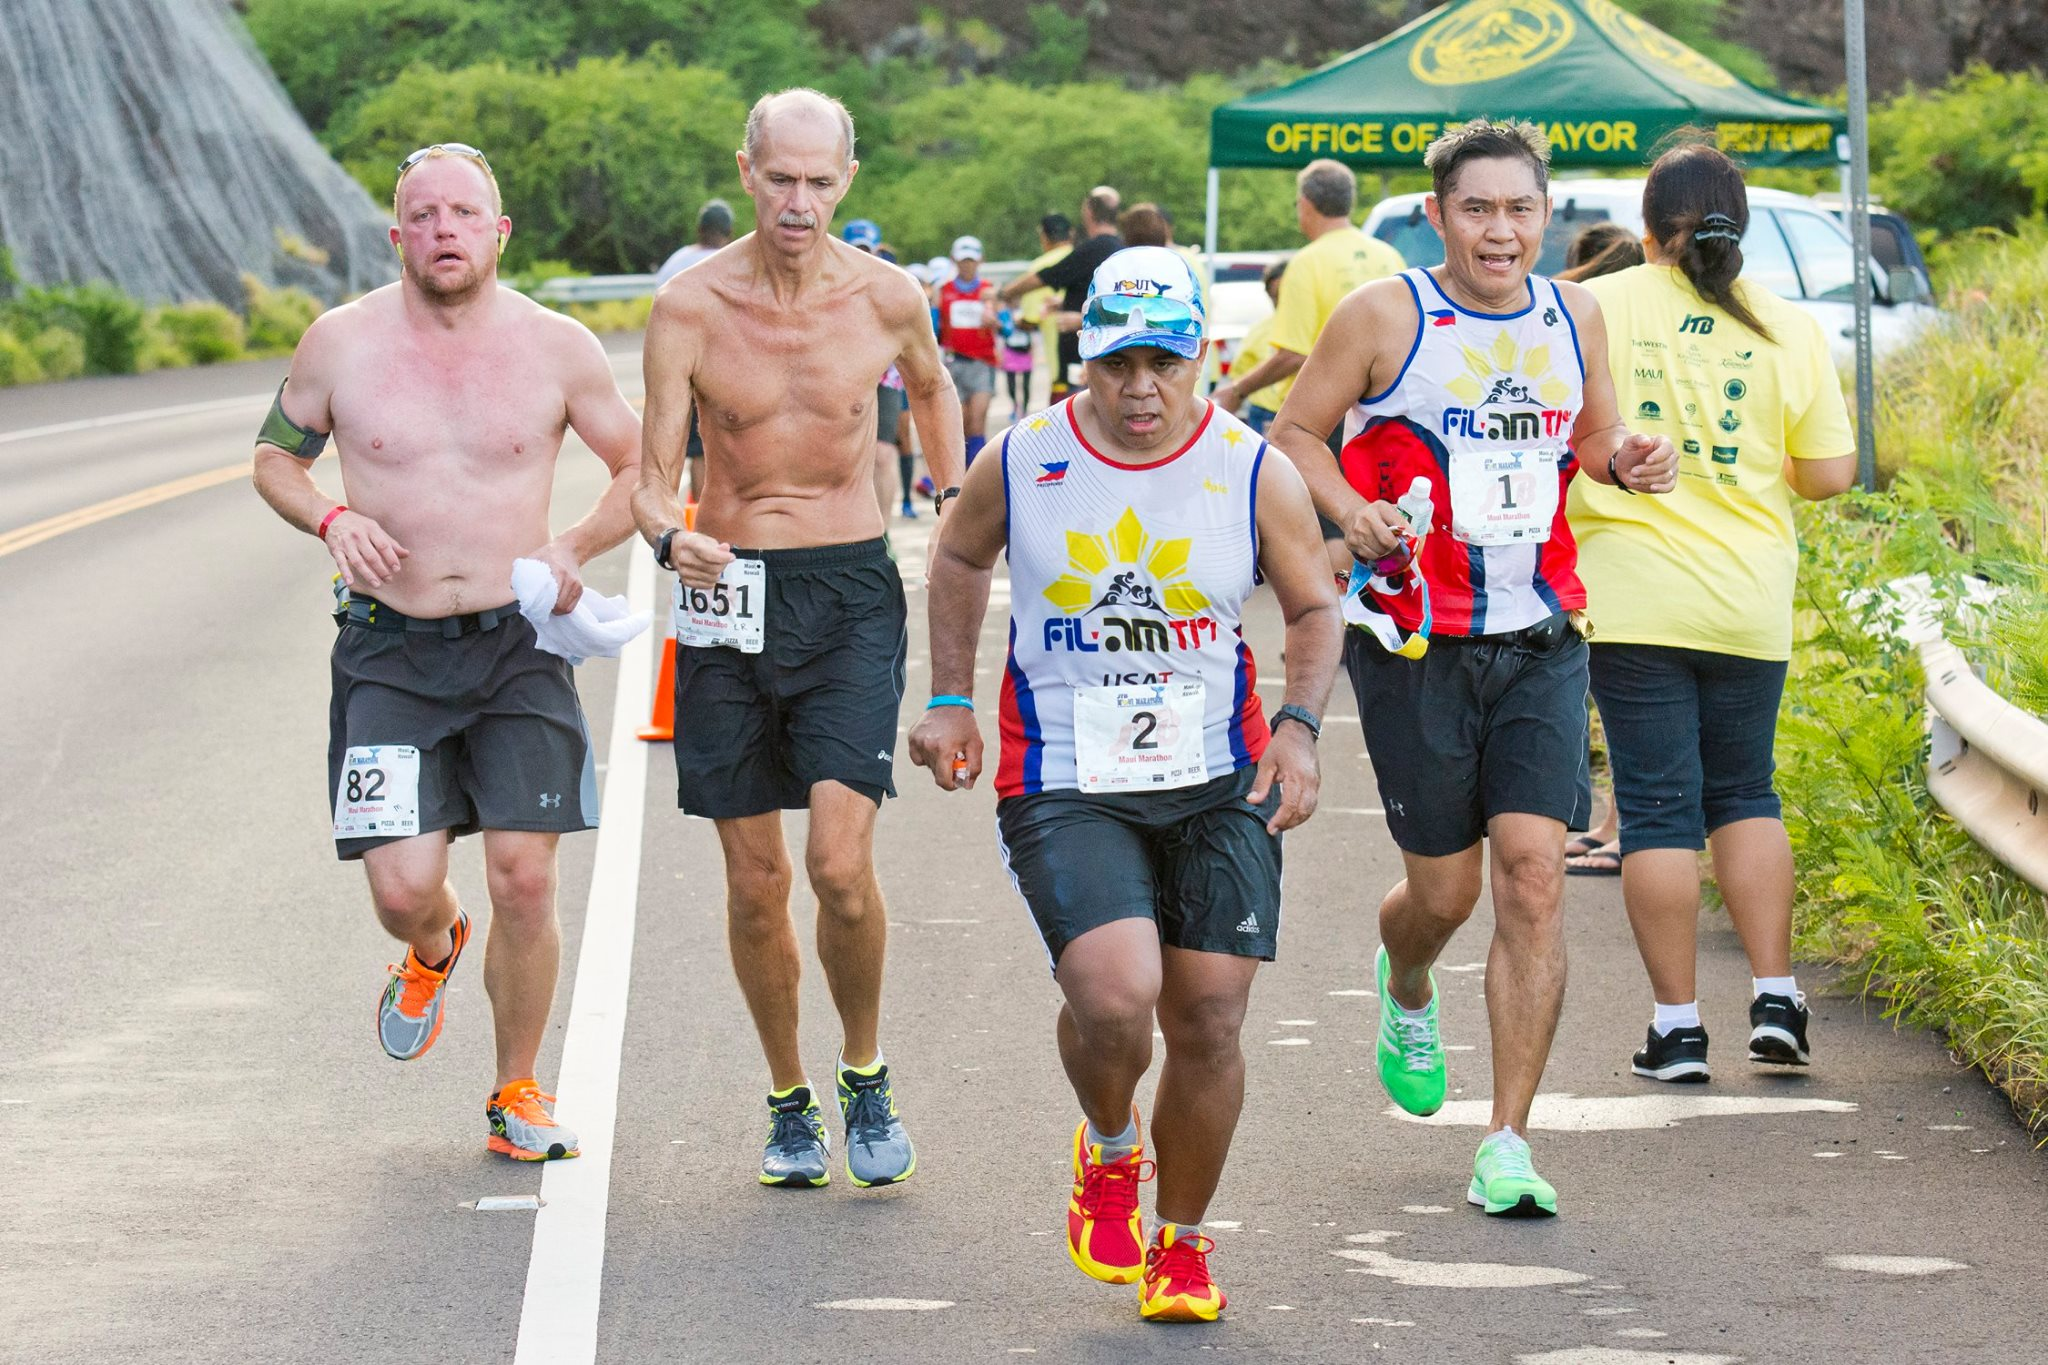 Maui Marathon Road Closures and Traffic Delays, Oct. 14